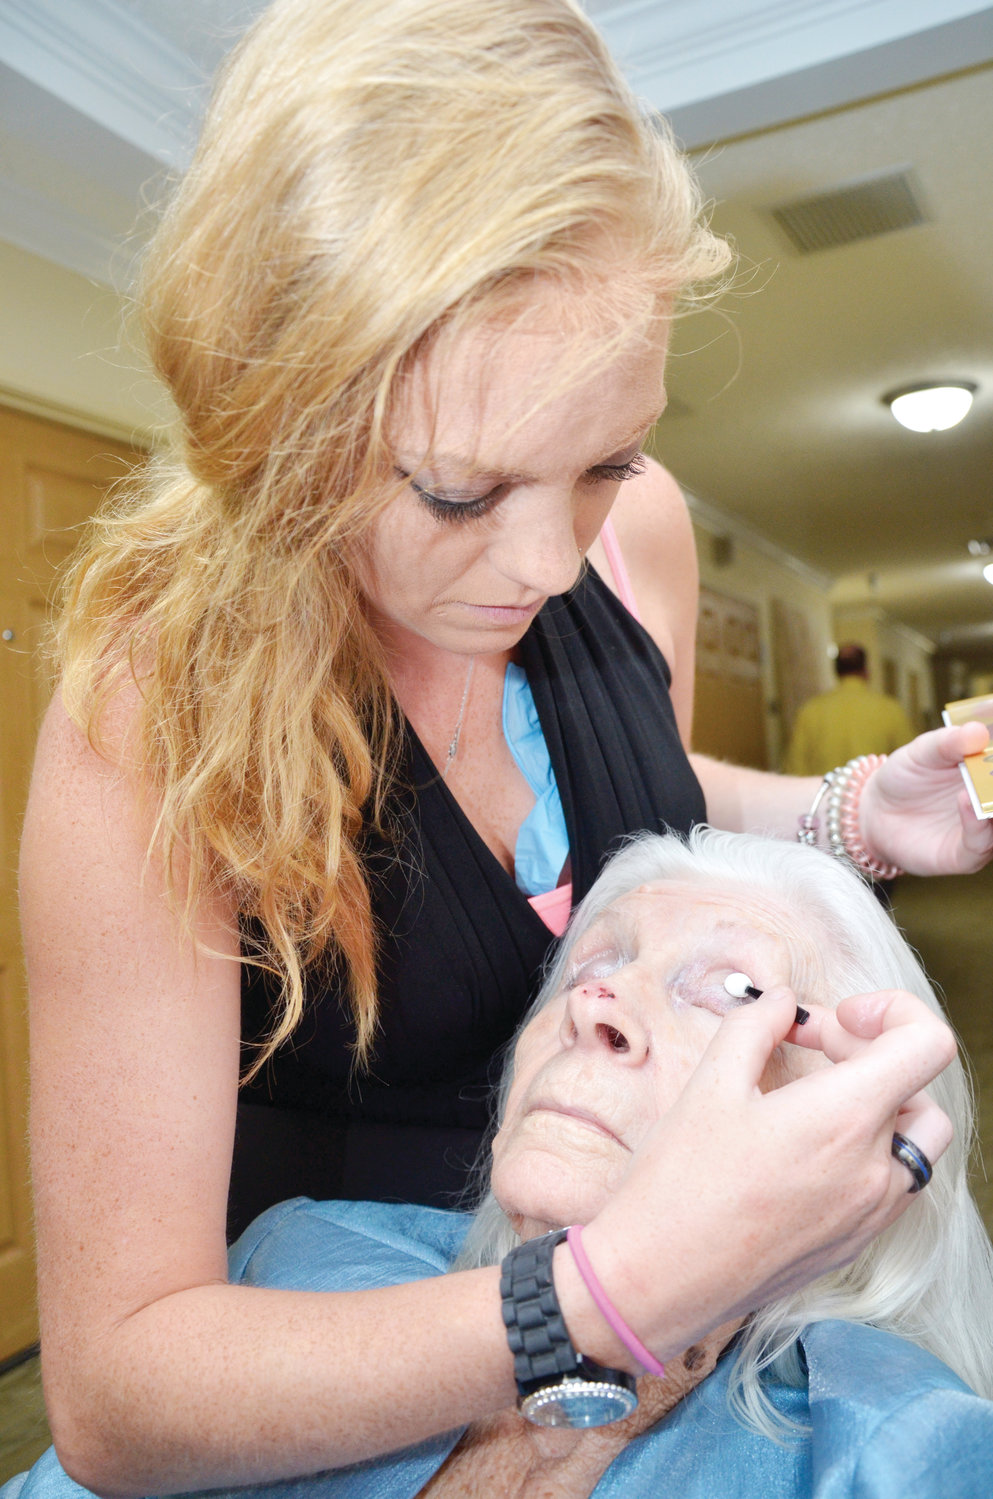 Caitlin Conn, a Certified Nursing Assistant at Cambridge Hills of PIttsboro, gives Louis Hope of Moody, Alabama a special touch of makeup before the start of the 2019 Ms. Cambridge Hills pageant. Conn said she enjoys hearing stories from fellow residents about where they're from, and special memories about their lives.